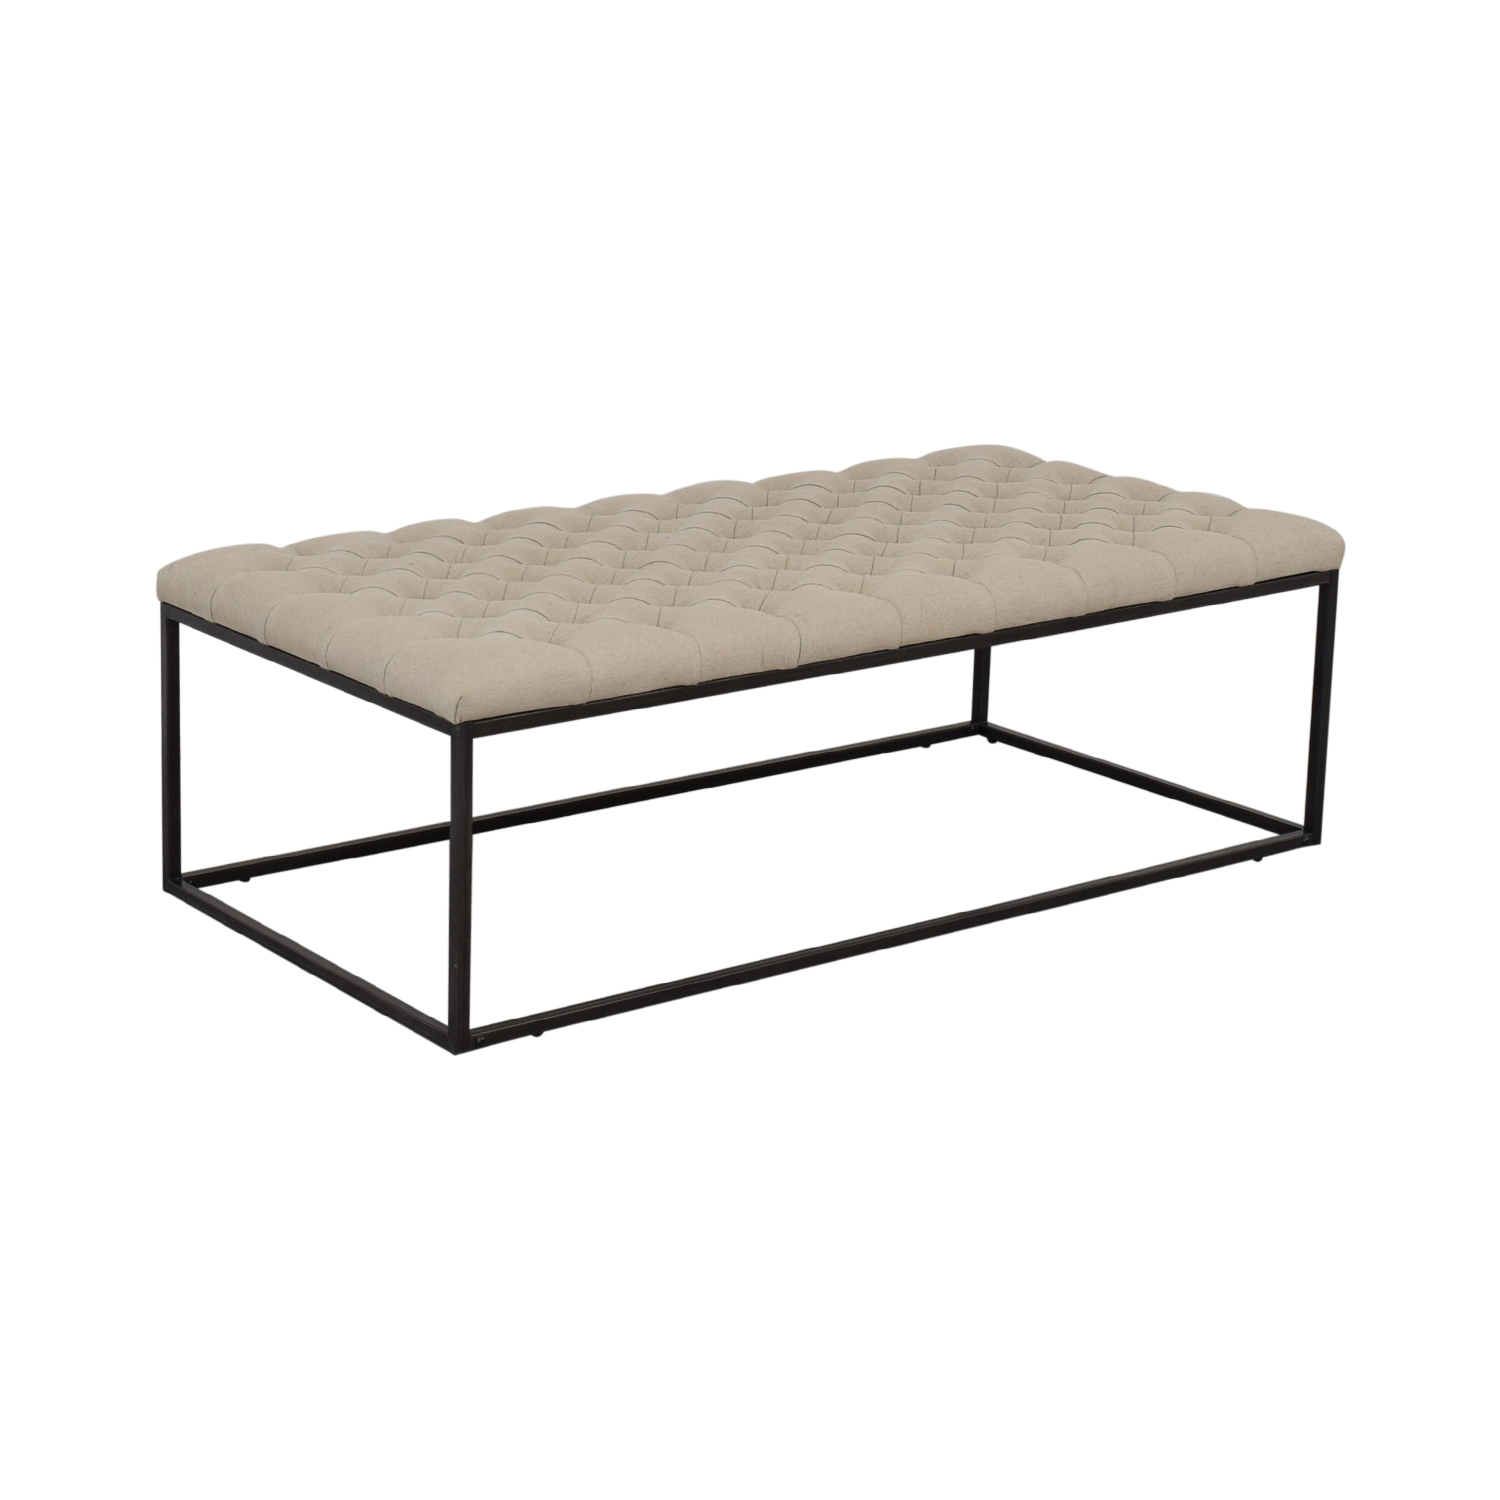 Classic Concepts Classic Concepts Tufted Ottoman Bench second hand